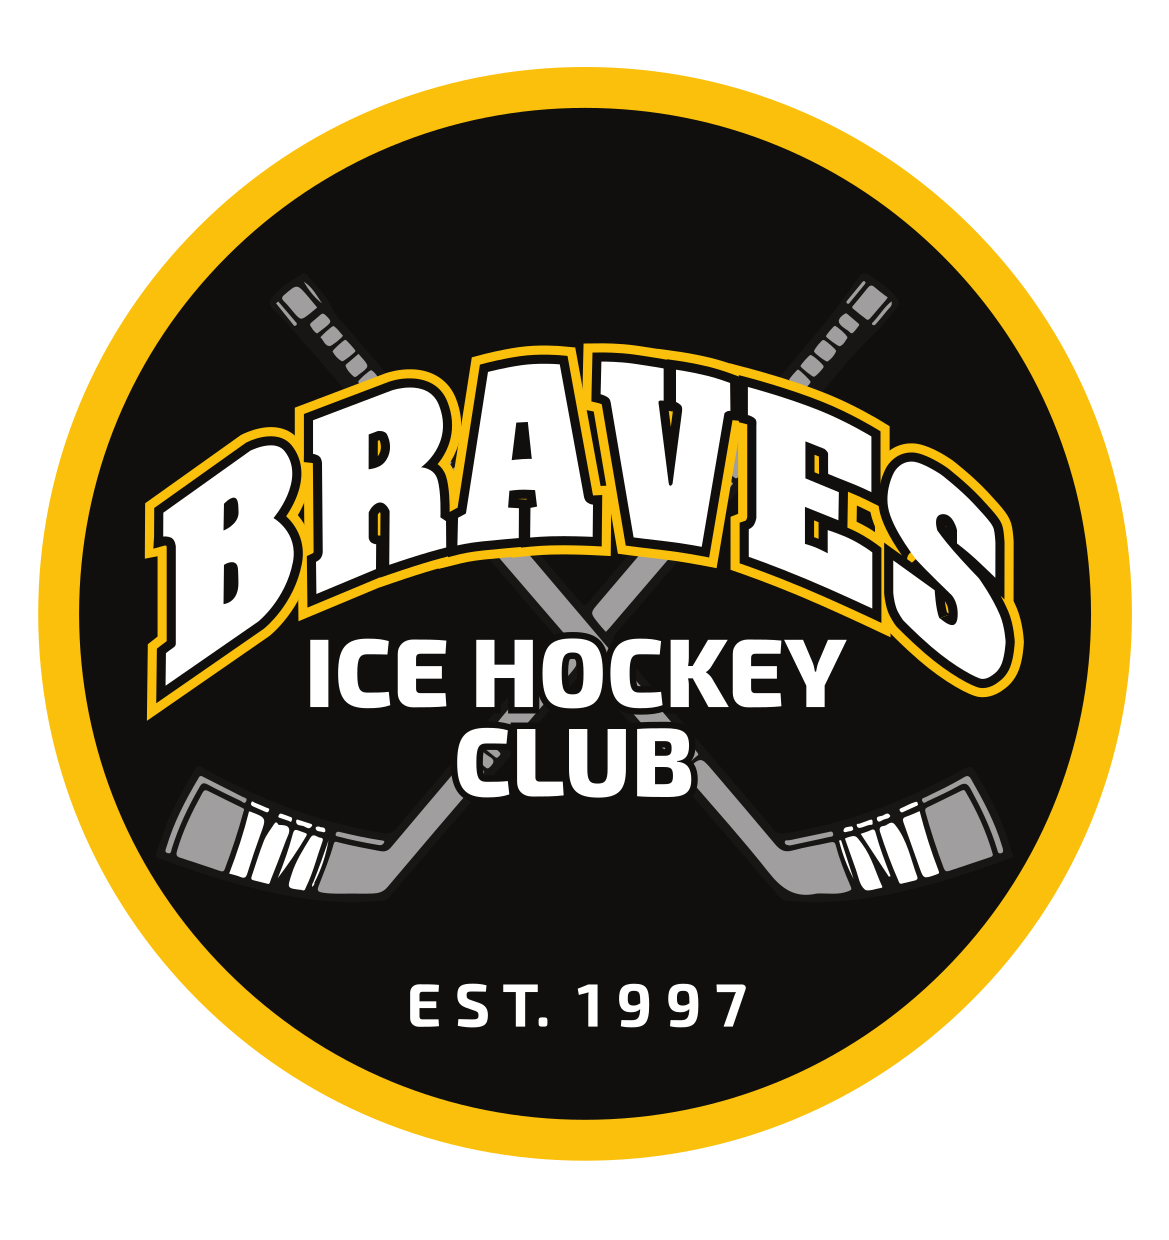 Braves Ice Hockey Club